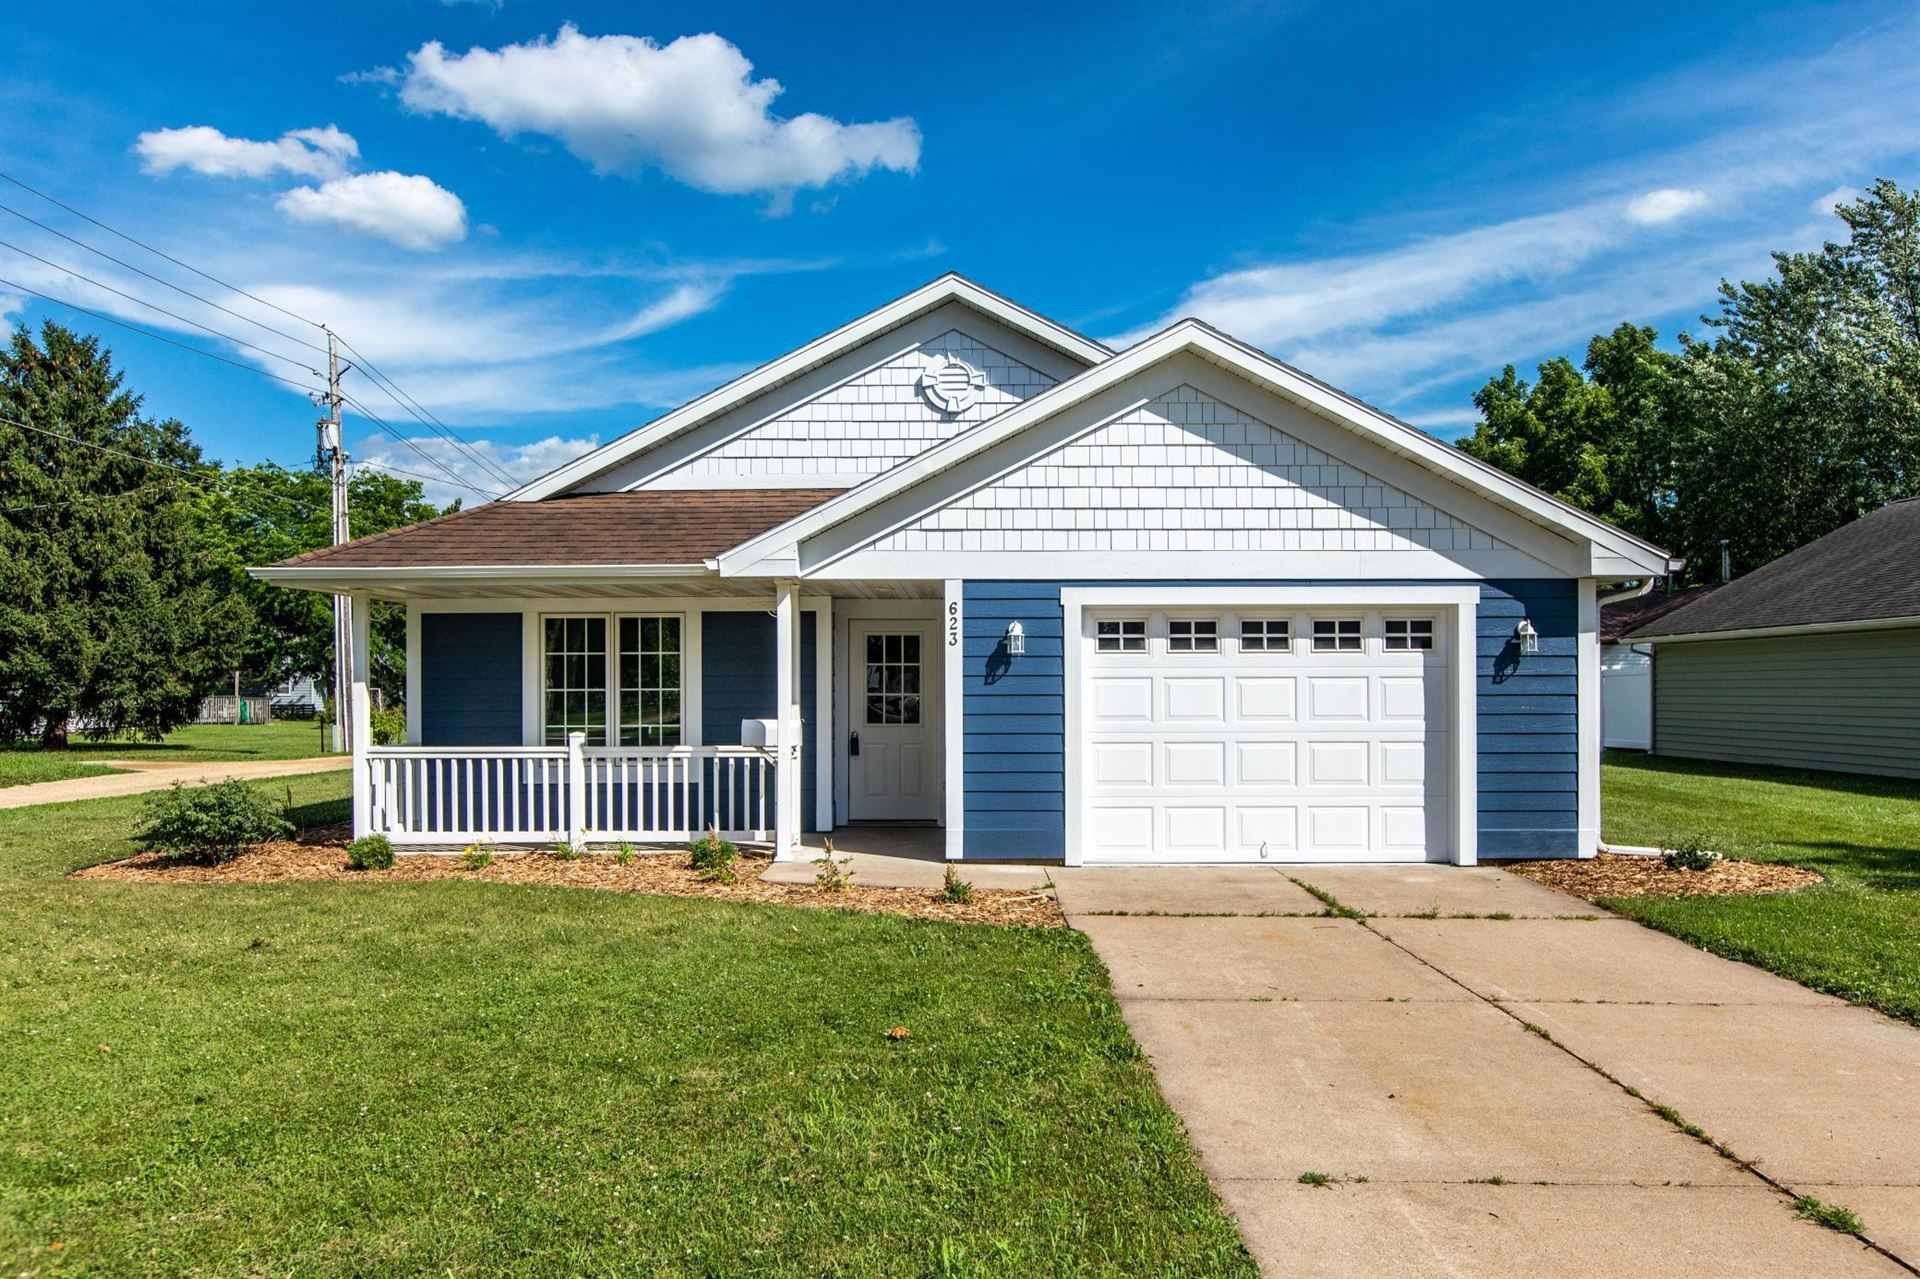 623 W Madison Street, Lake City, MN 55041 - MLS#: 5621575